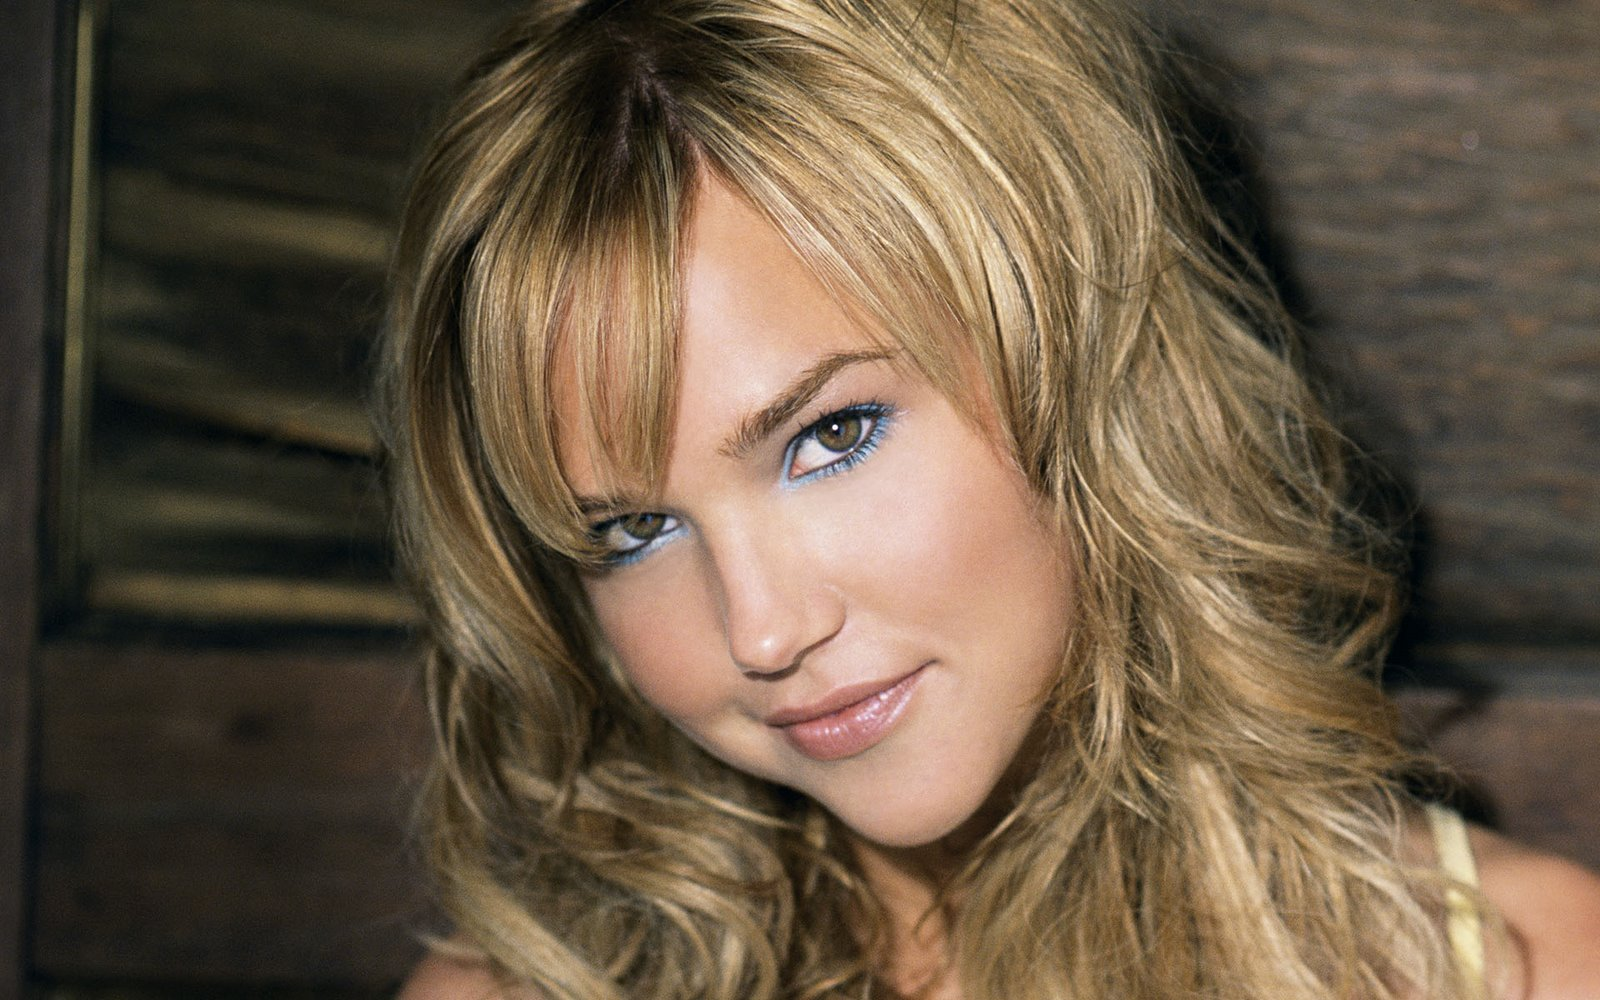 Sexy Super Hot Teen Supermodel 18++ Girl Arielle Kebbel Erotic Images